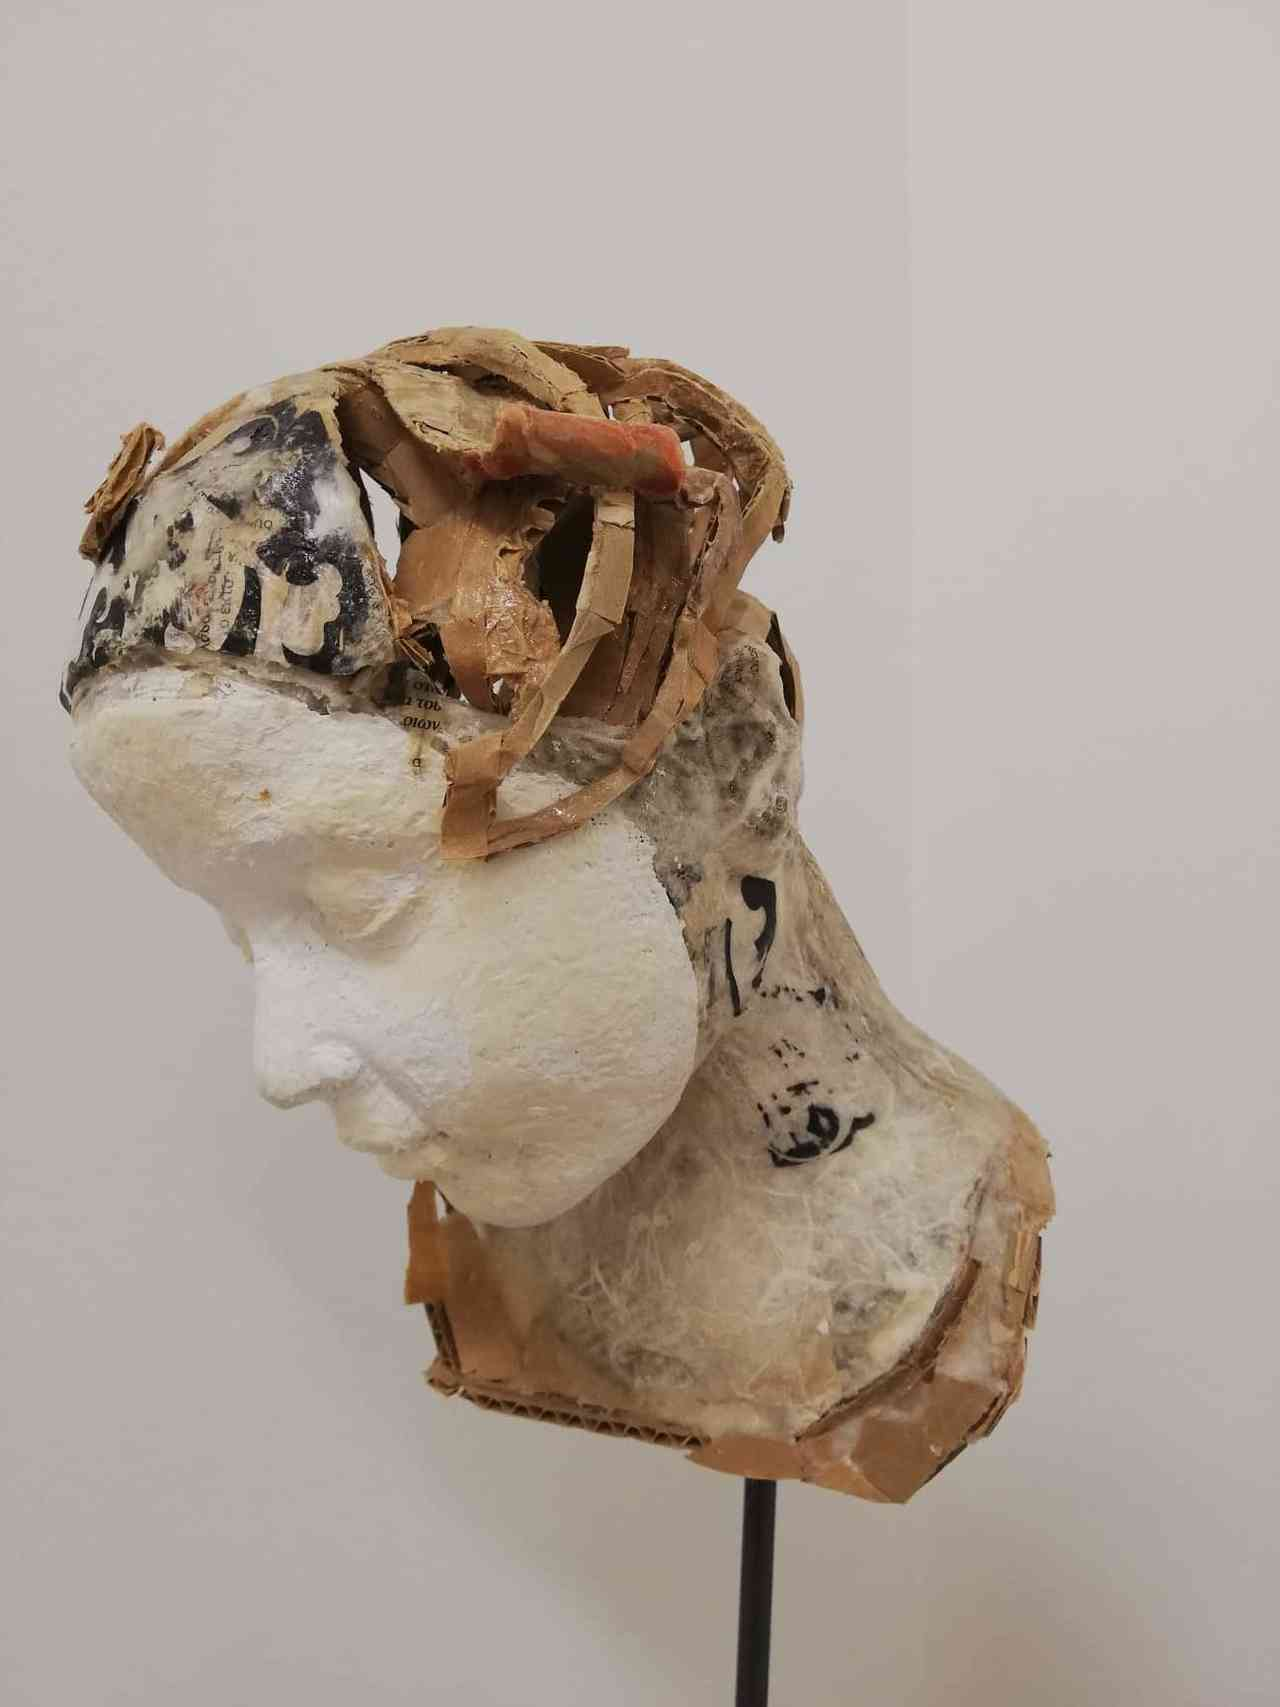 Valli Nomidou, Face with mask, 20.5x25x29 cm, mixed media